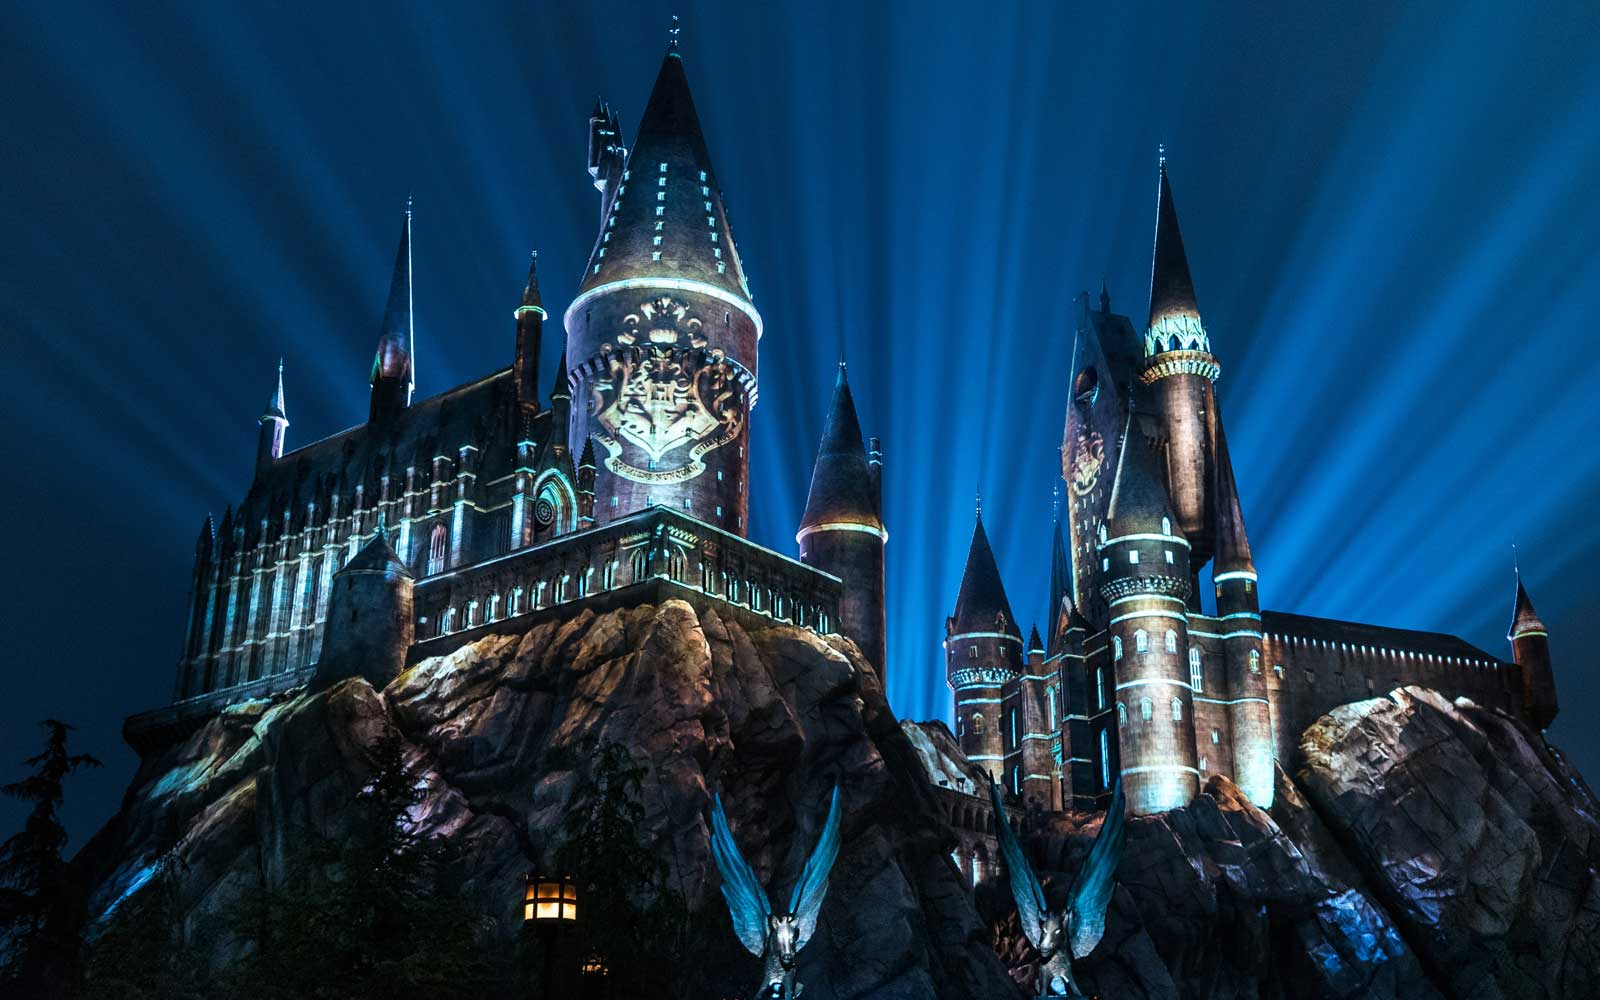 Get a Sneak Peek at the New Roller Coaster at the Wizarding World of Harry Potter